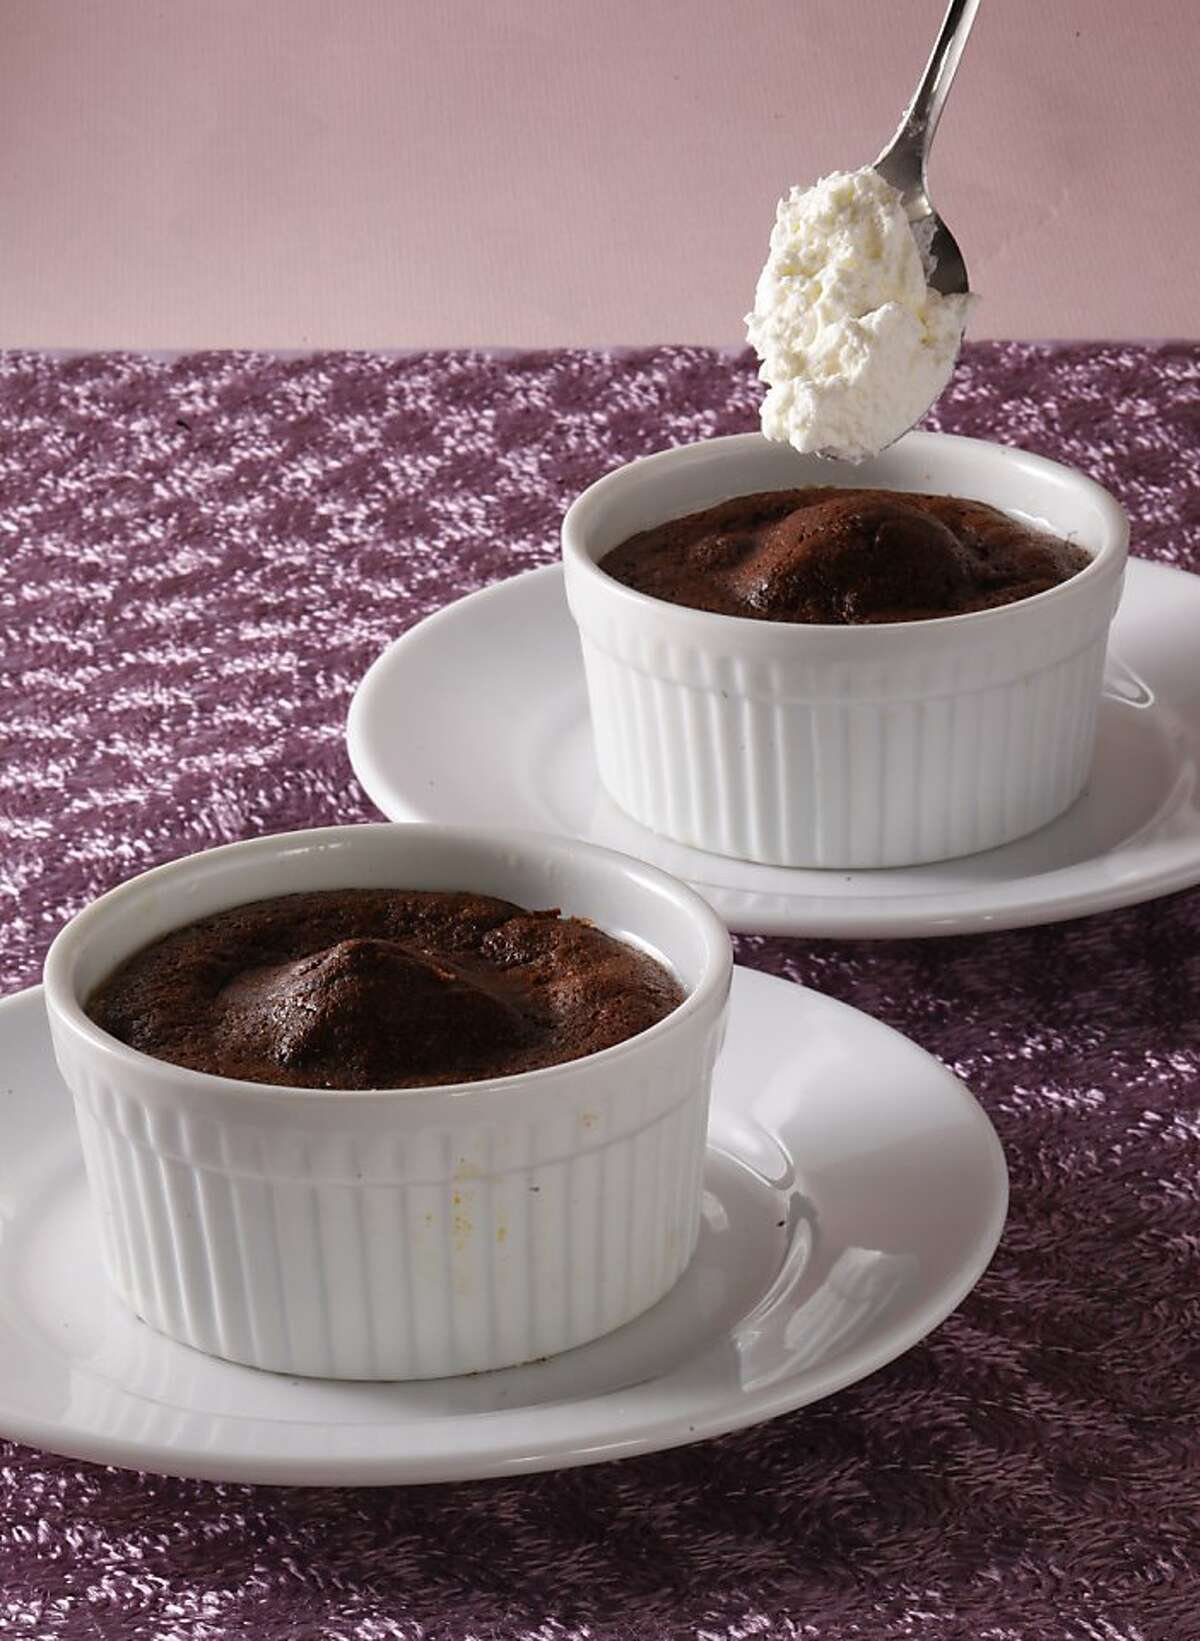 Chocolate souffles for two as seen in San Francisco, California, on Wednesday, January 23, 2013. Food styled by Simon F. F. Young.